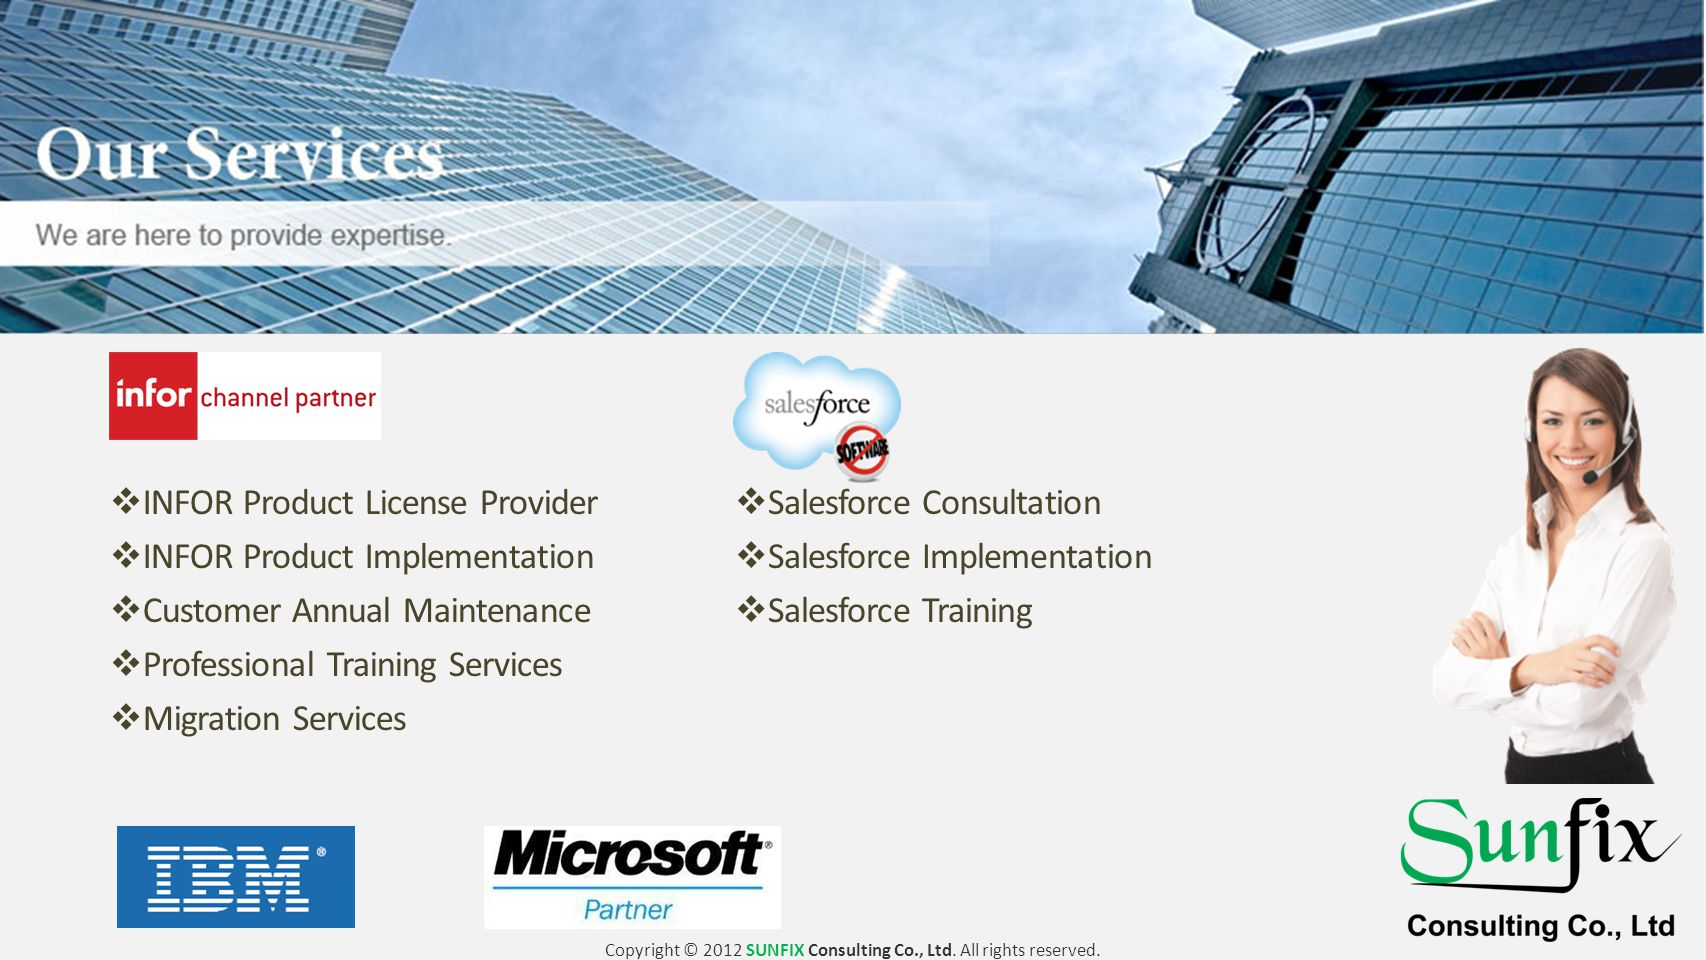  Salesforce Consultation  Salesforce Implementation  Salesforce Training  INFOR Product License Provider  INFOR Product Implementation  Customer Annual Maintenance  Professional Training Services  Migration Services Copyright © 2012 SUNFIX Consulting Co., Ltd.